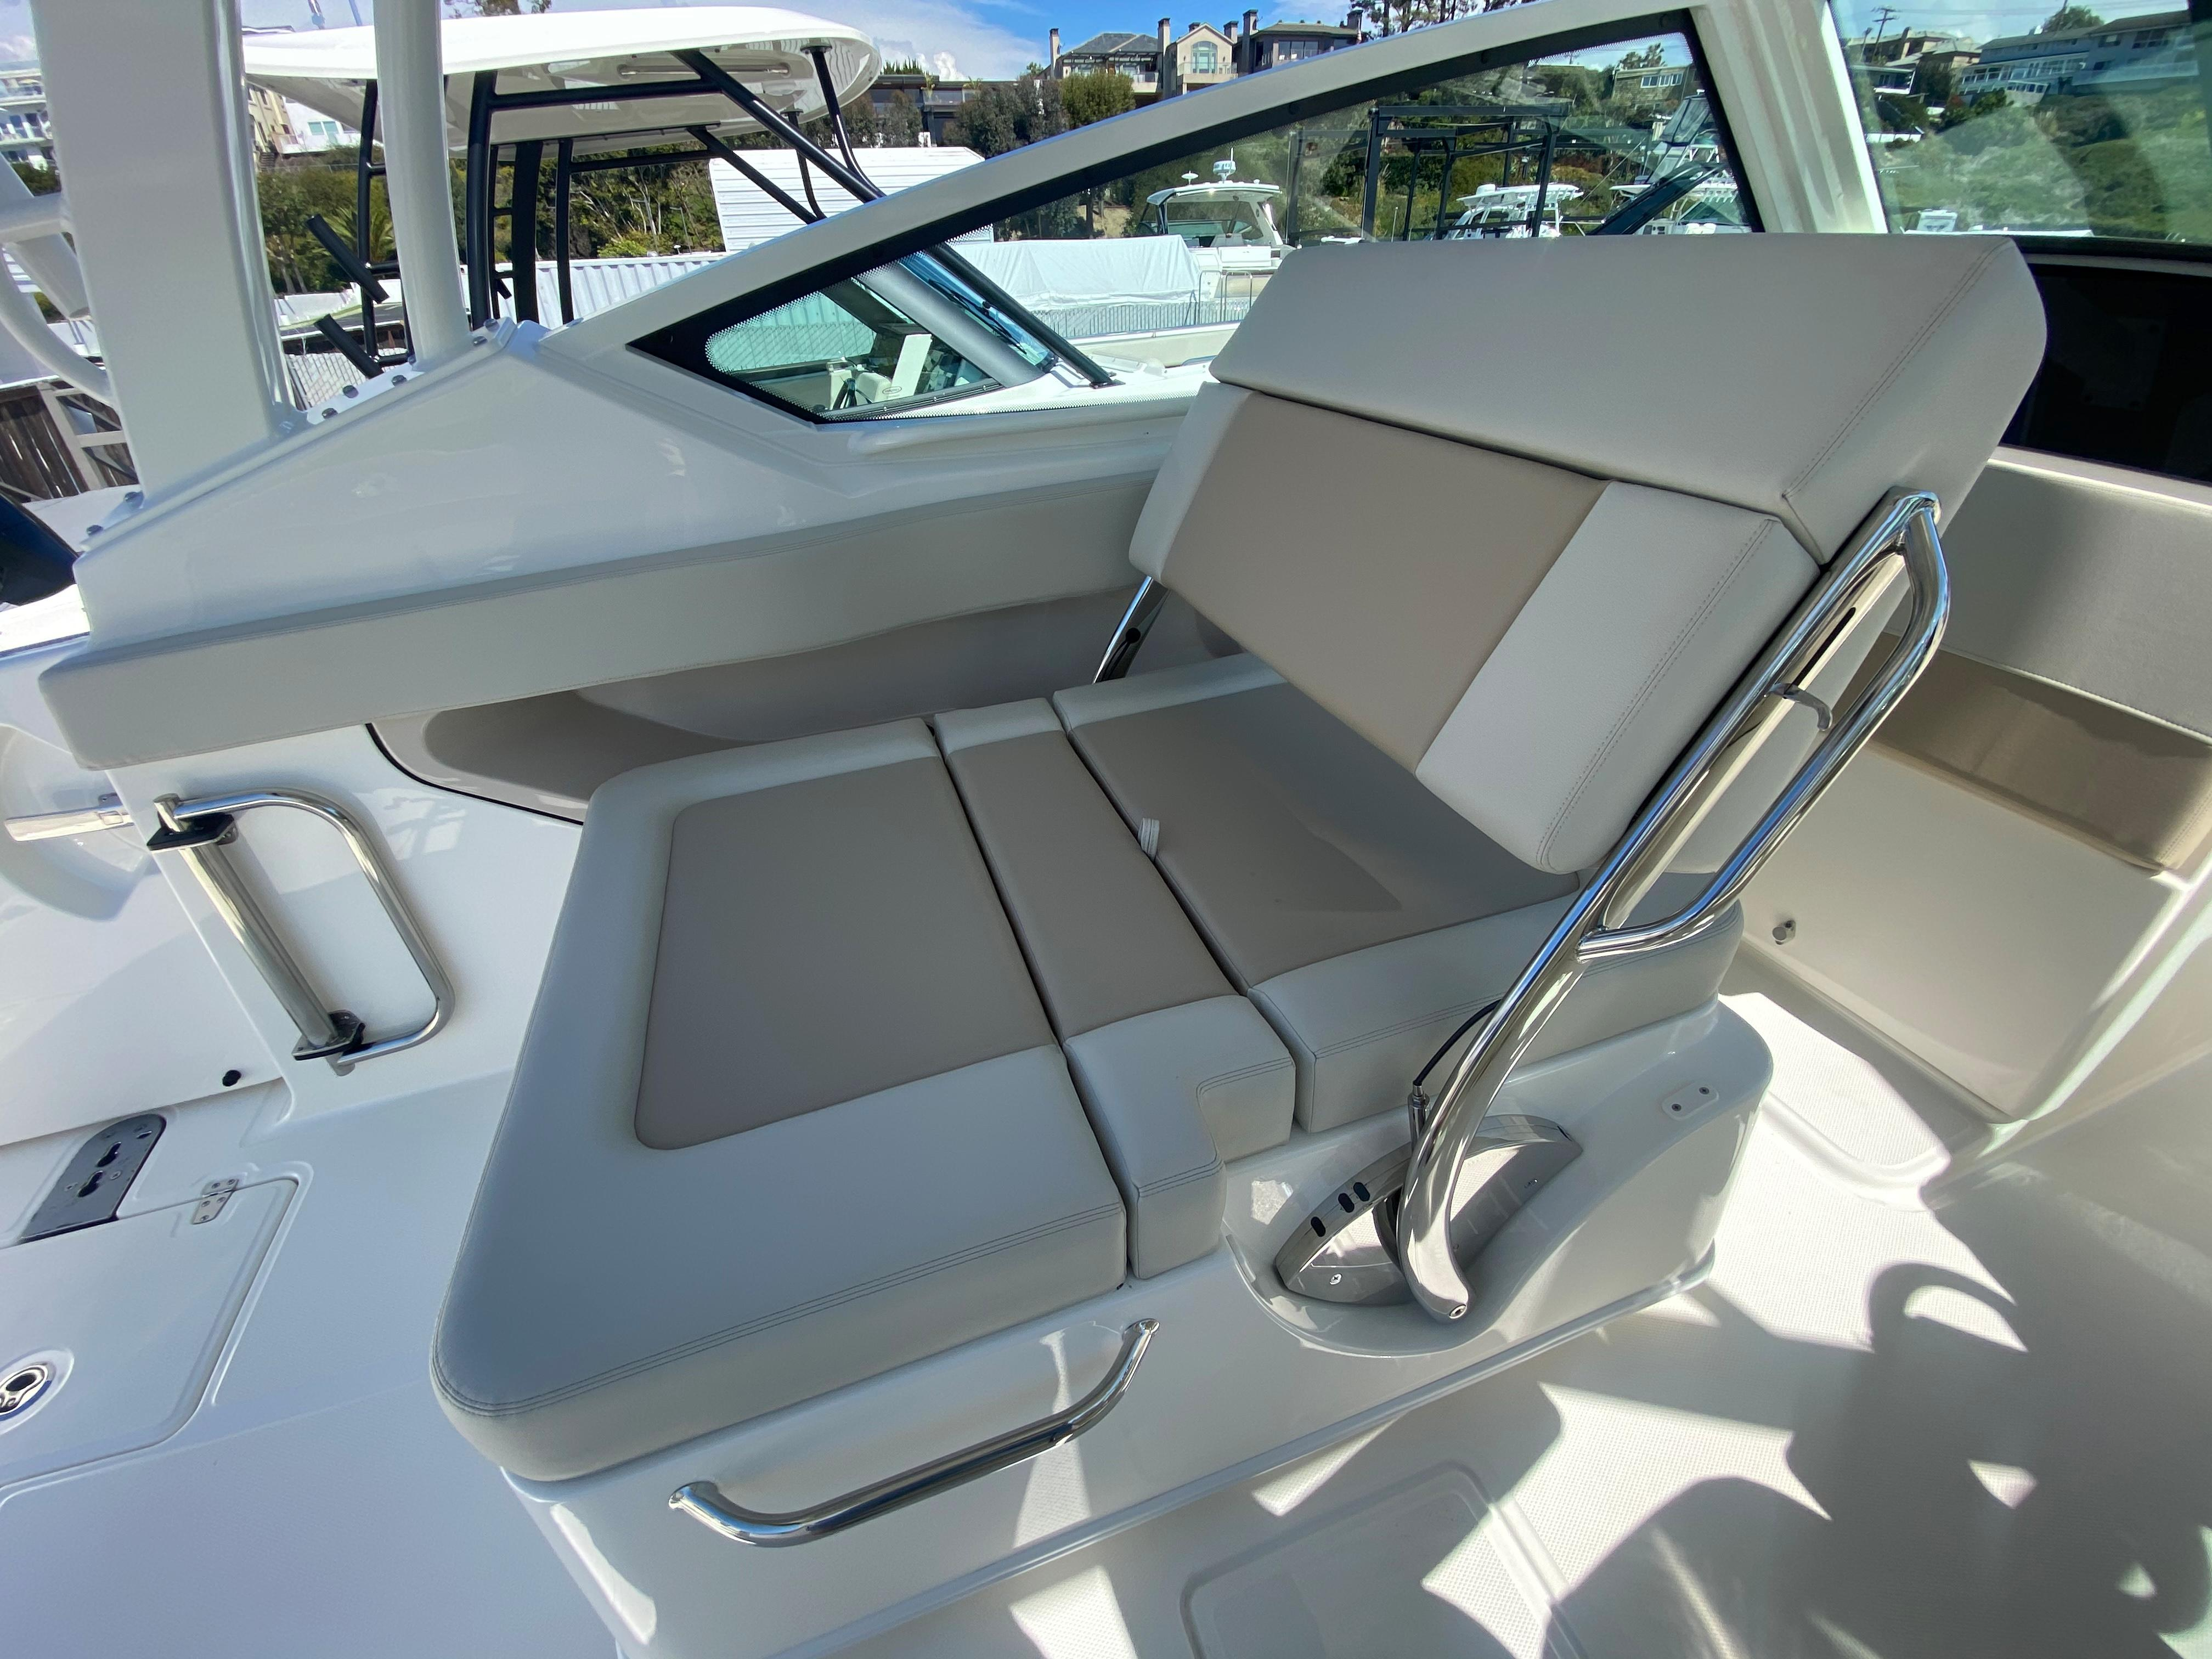 2021 Boston Whaler 280 Vantage #BW1545A inventory image at Sun Country Coastal in Newport Beach